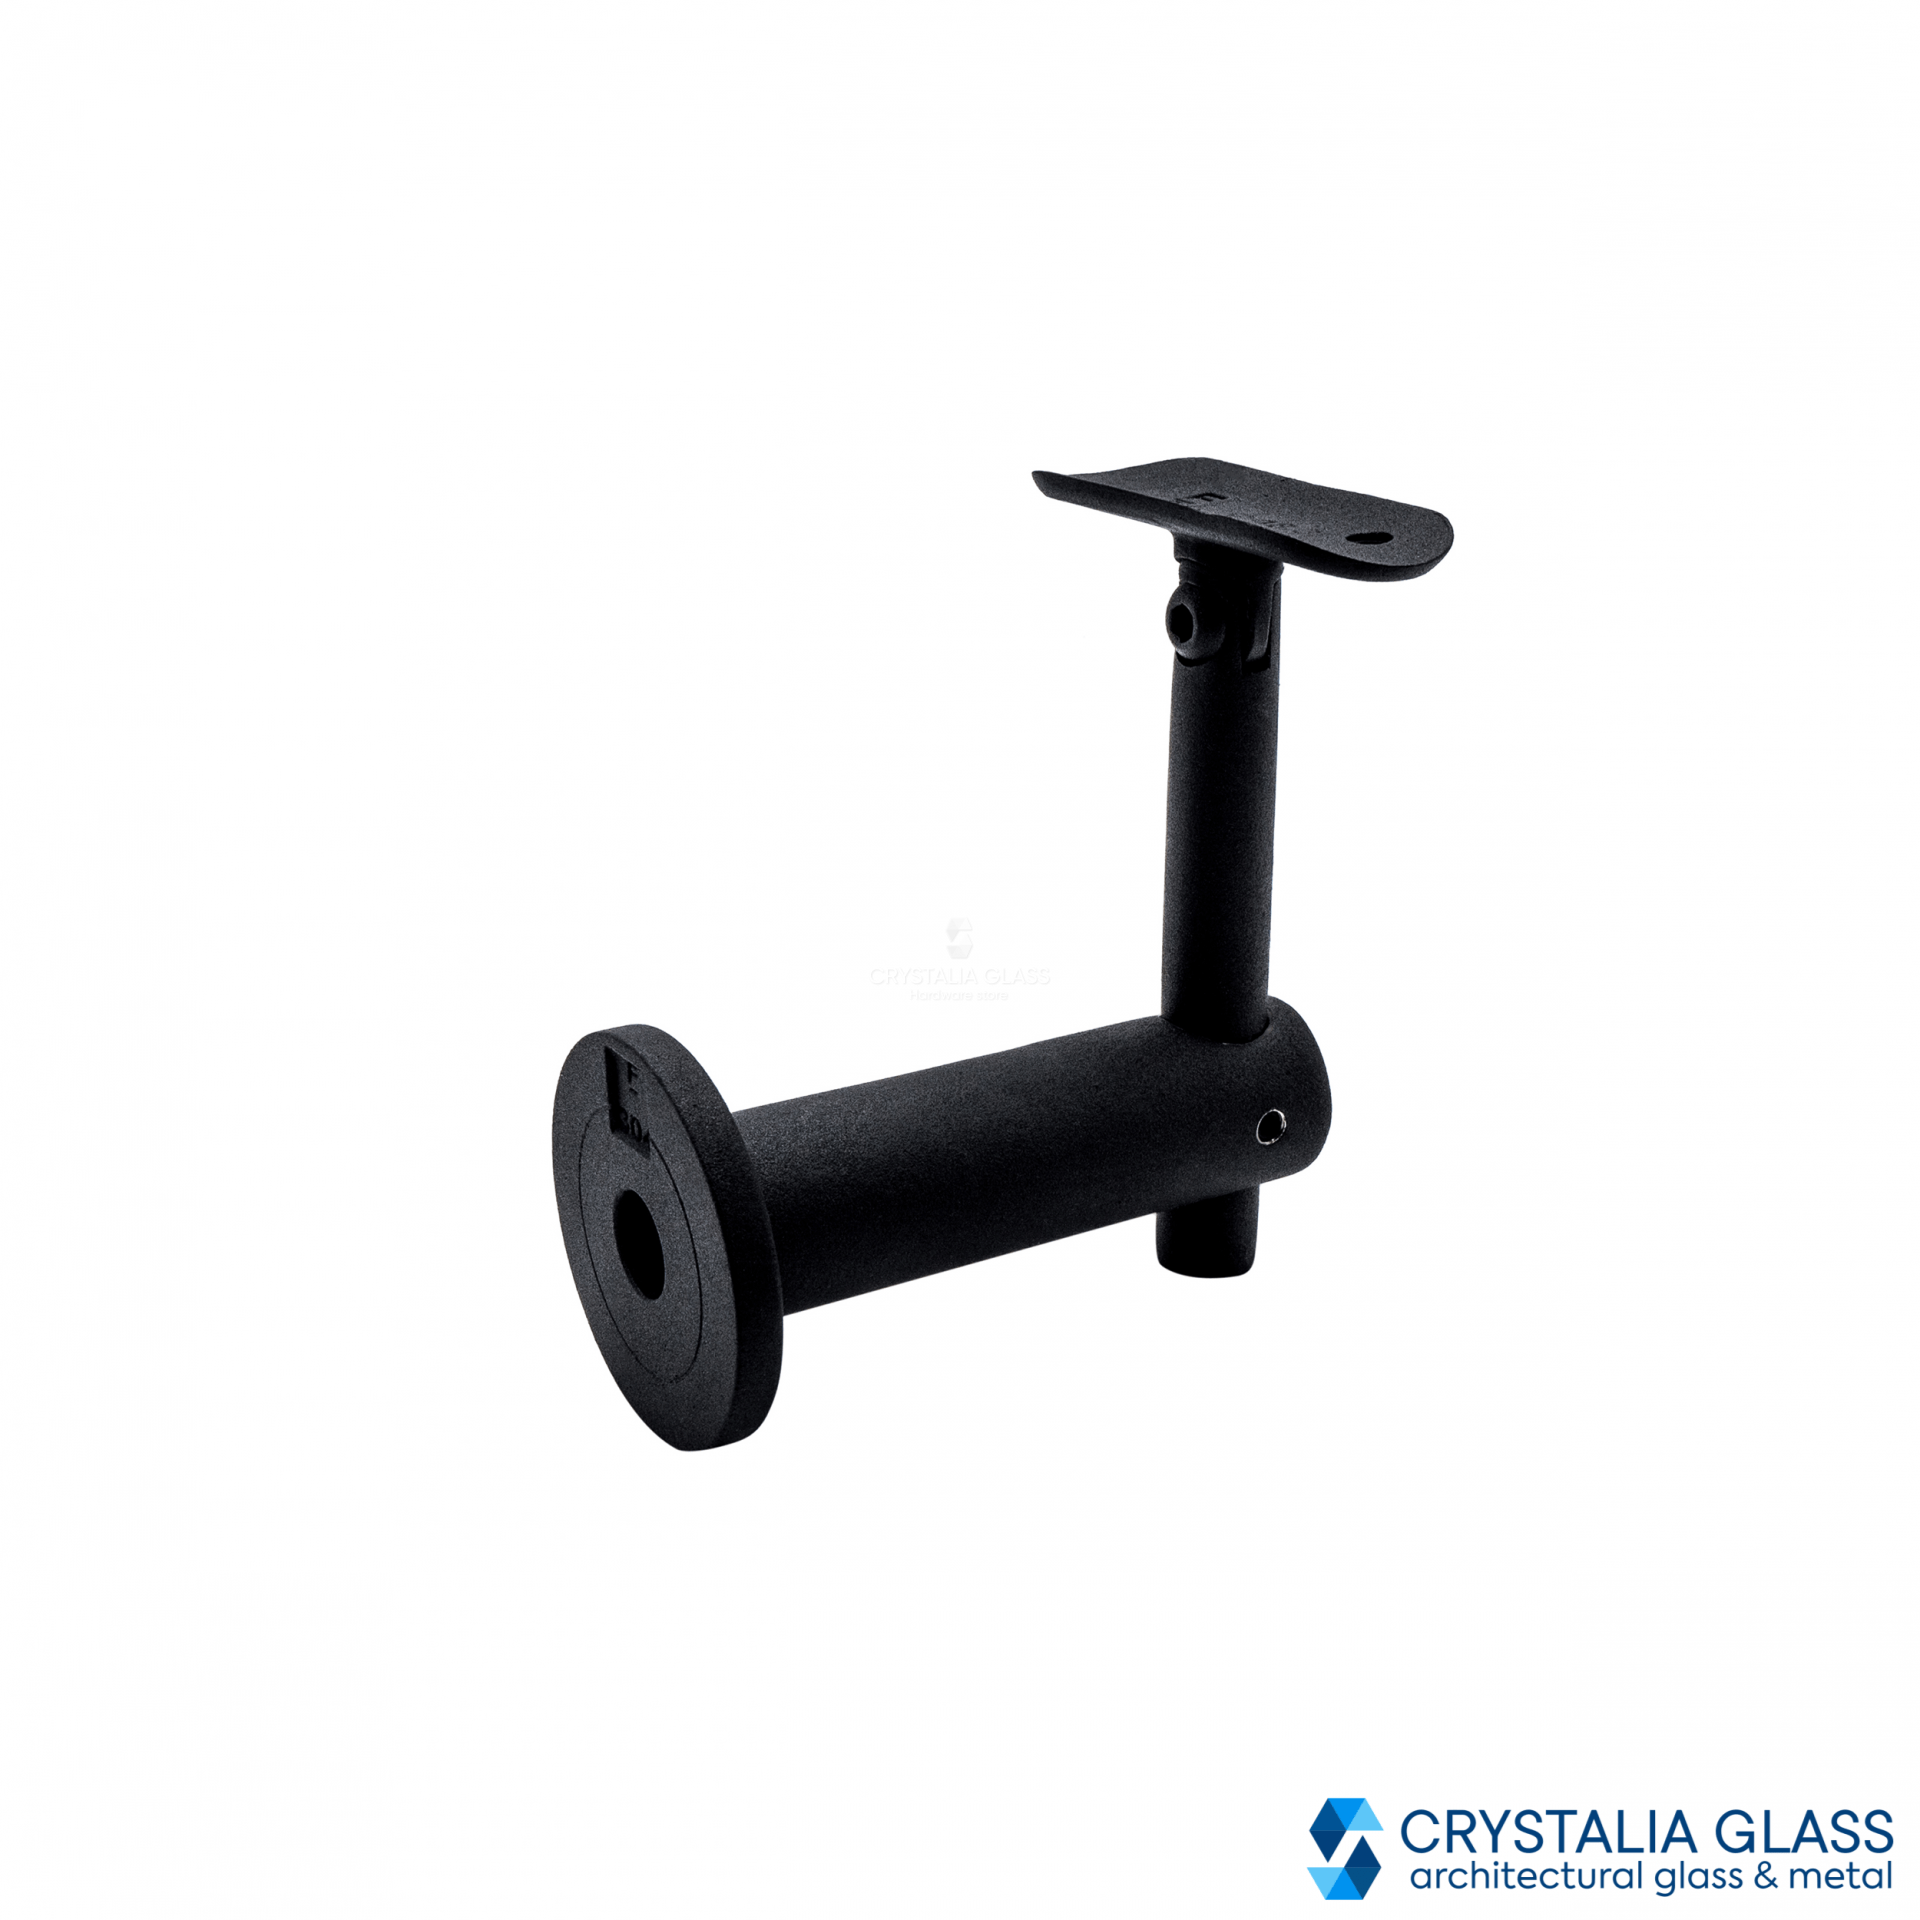 CG Black Matte Wall Mounted Hand Rail Bracket with Flat Saddle